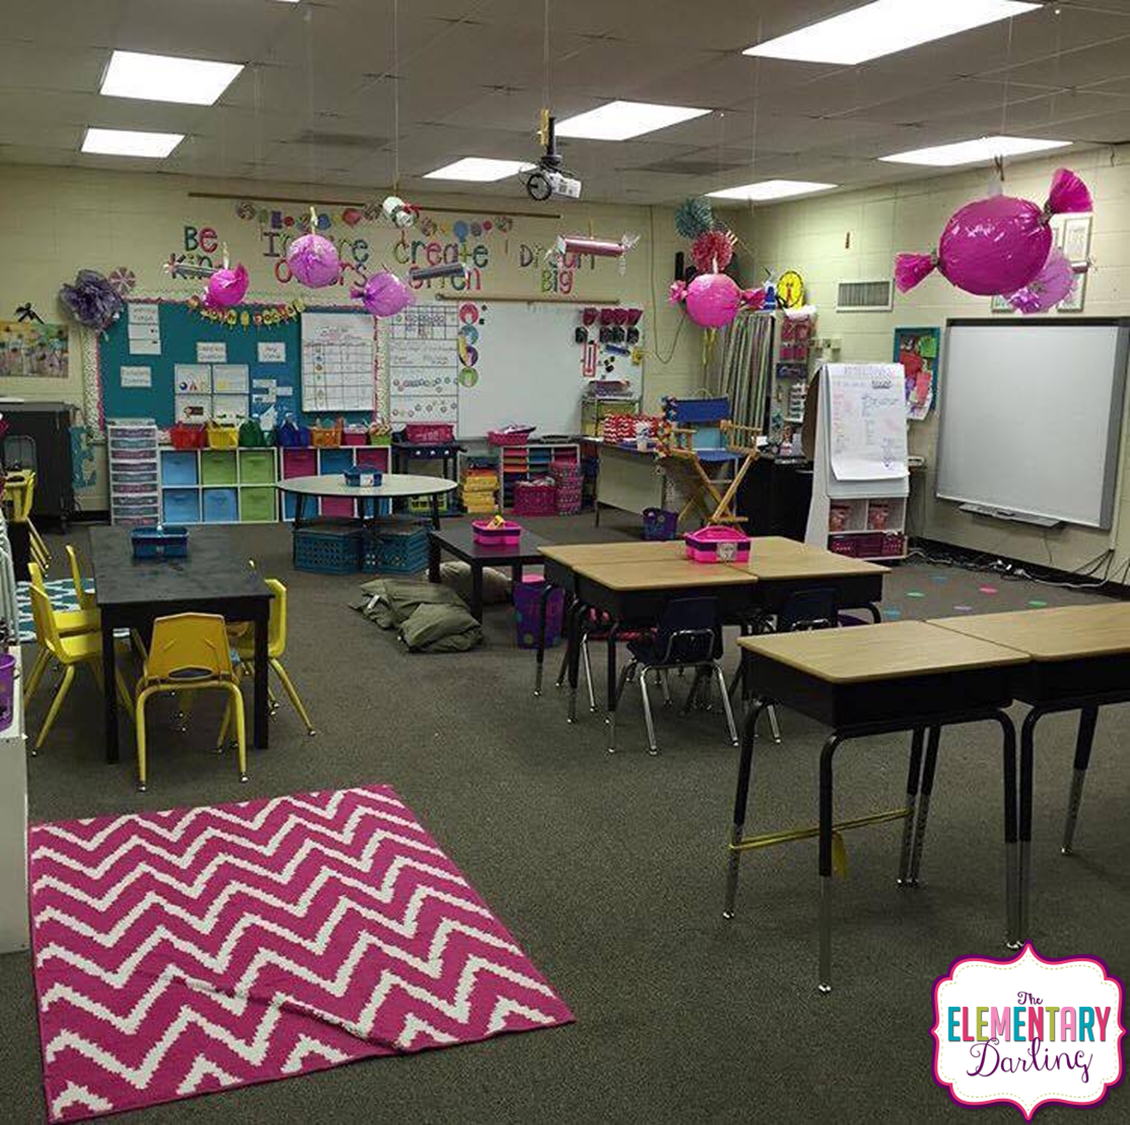 Classroom Arrangement Ideas For Elementary ~ The elementary darling flexible seating what i have learned